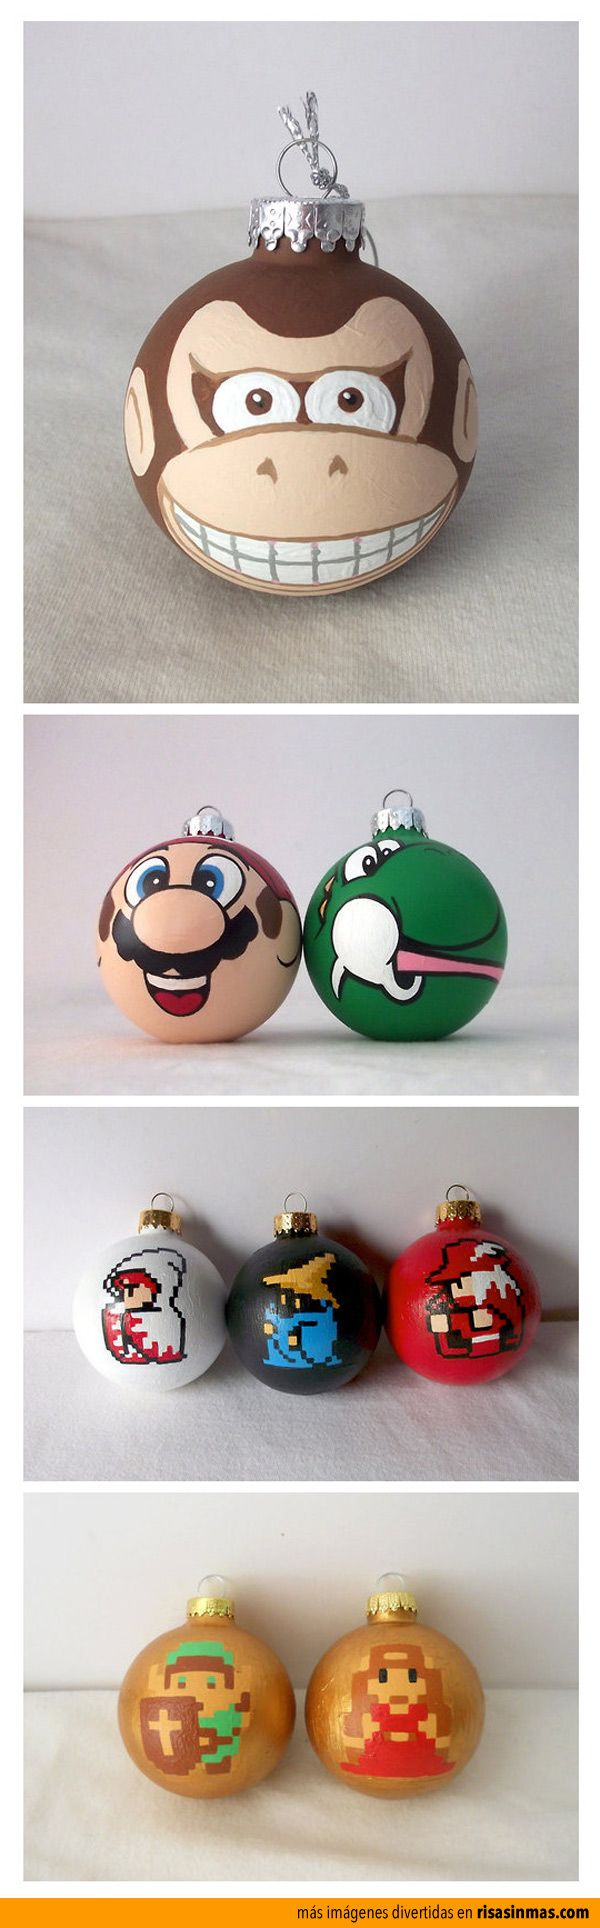 hand painted Nintendo holiday ornaments, super cute! | General ...